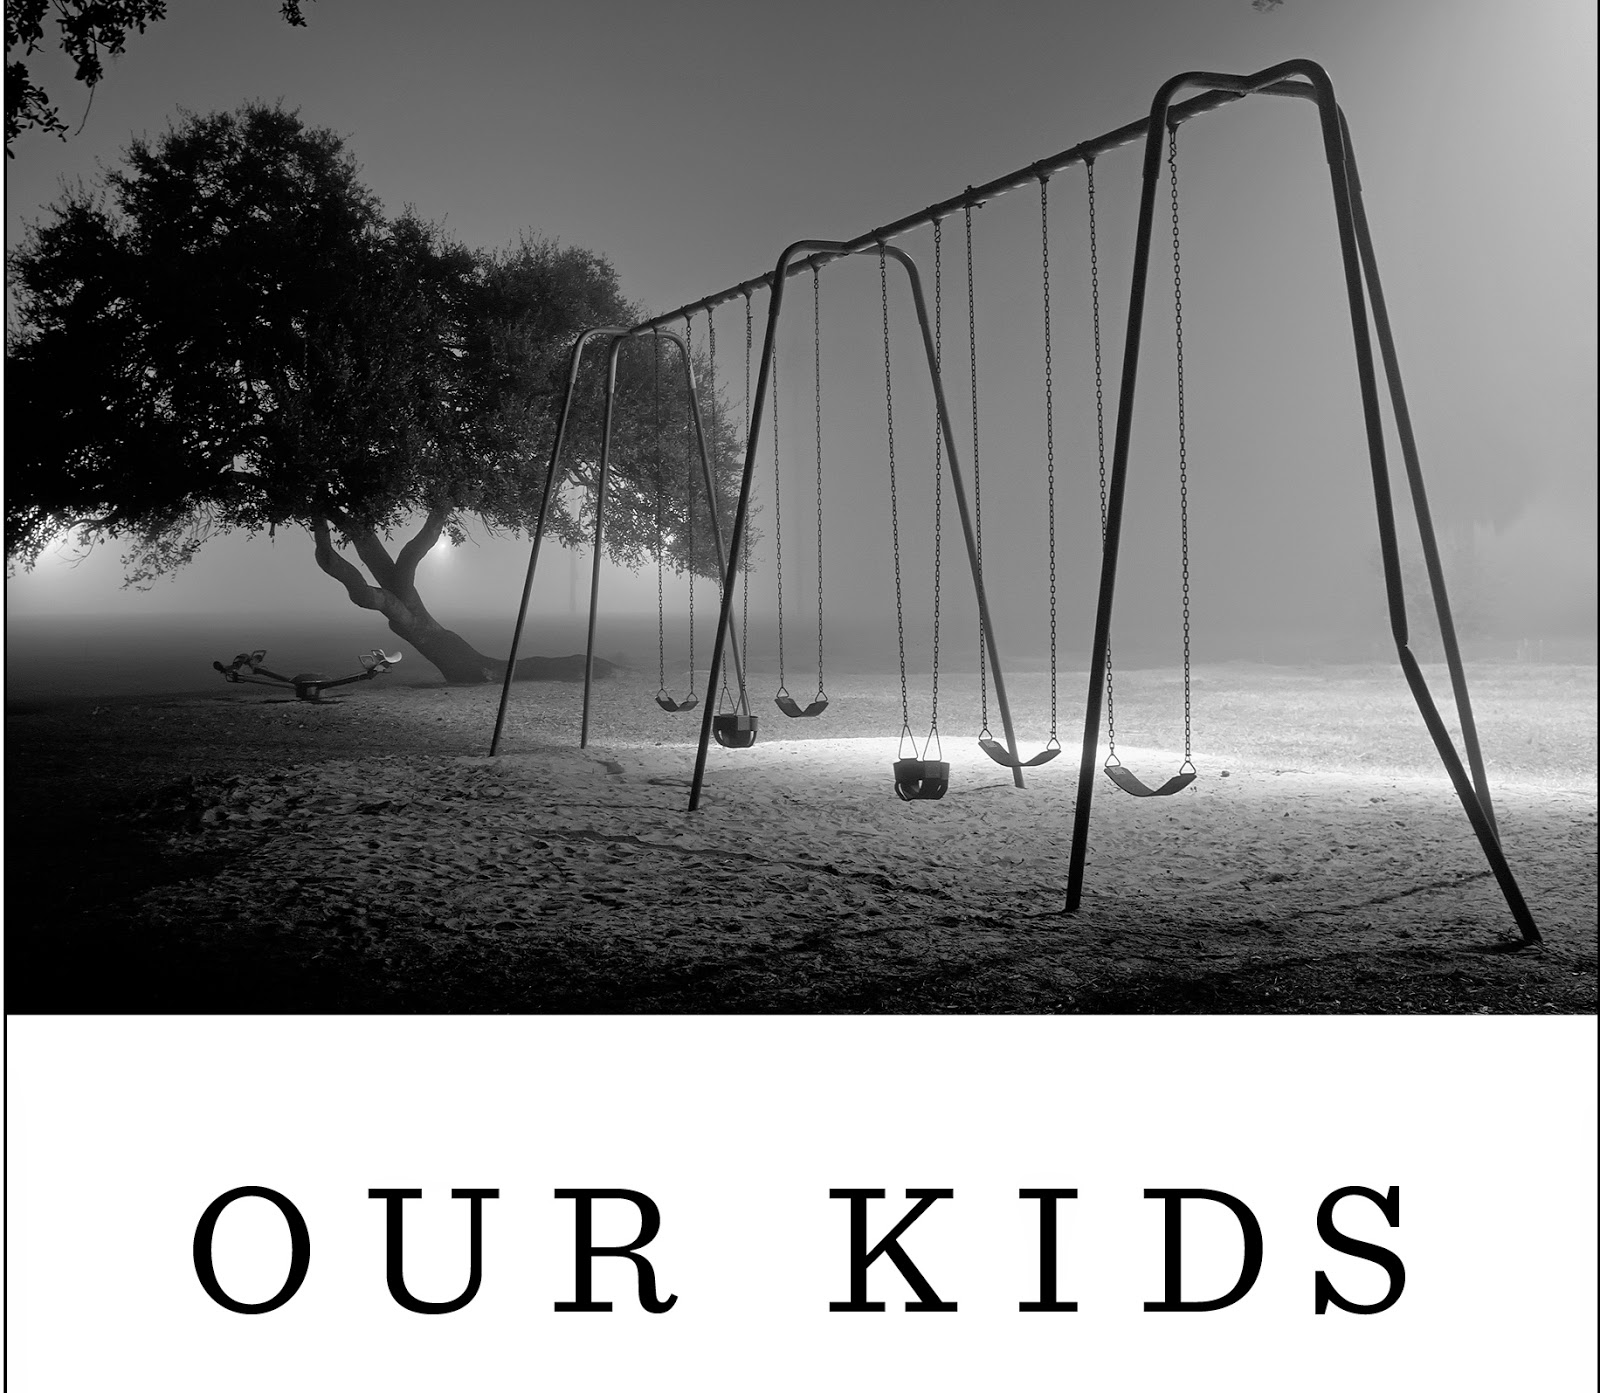 our_kids_by_robert_putnam.jpg